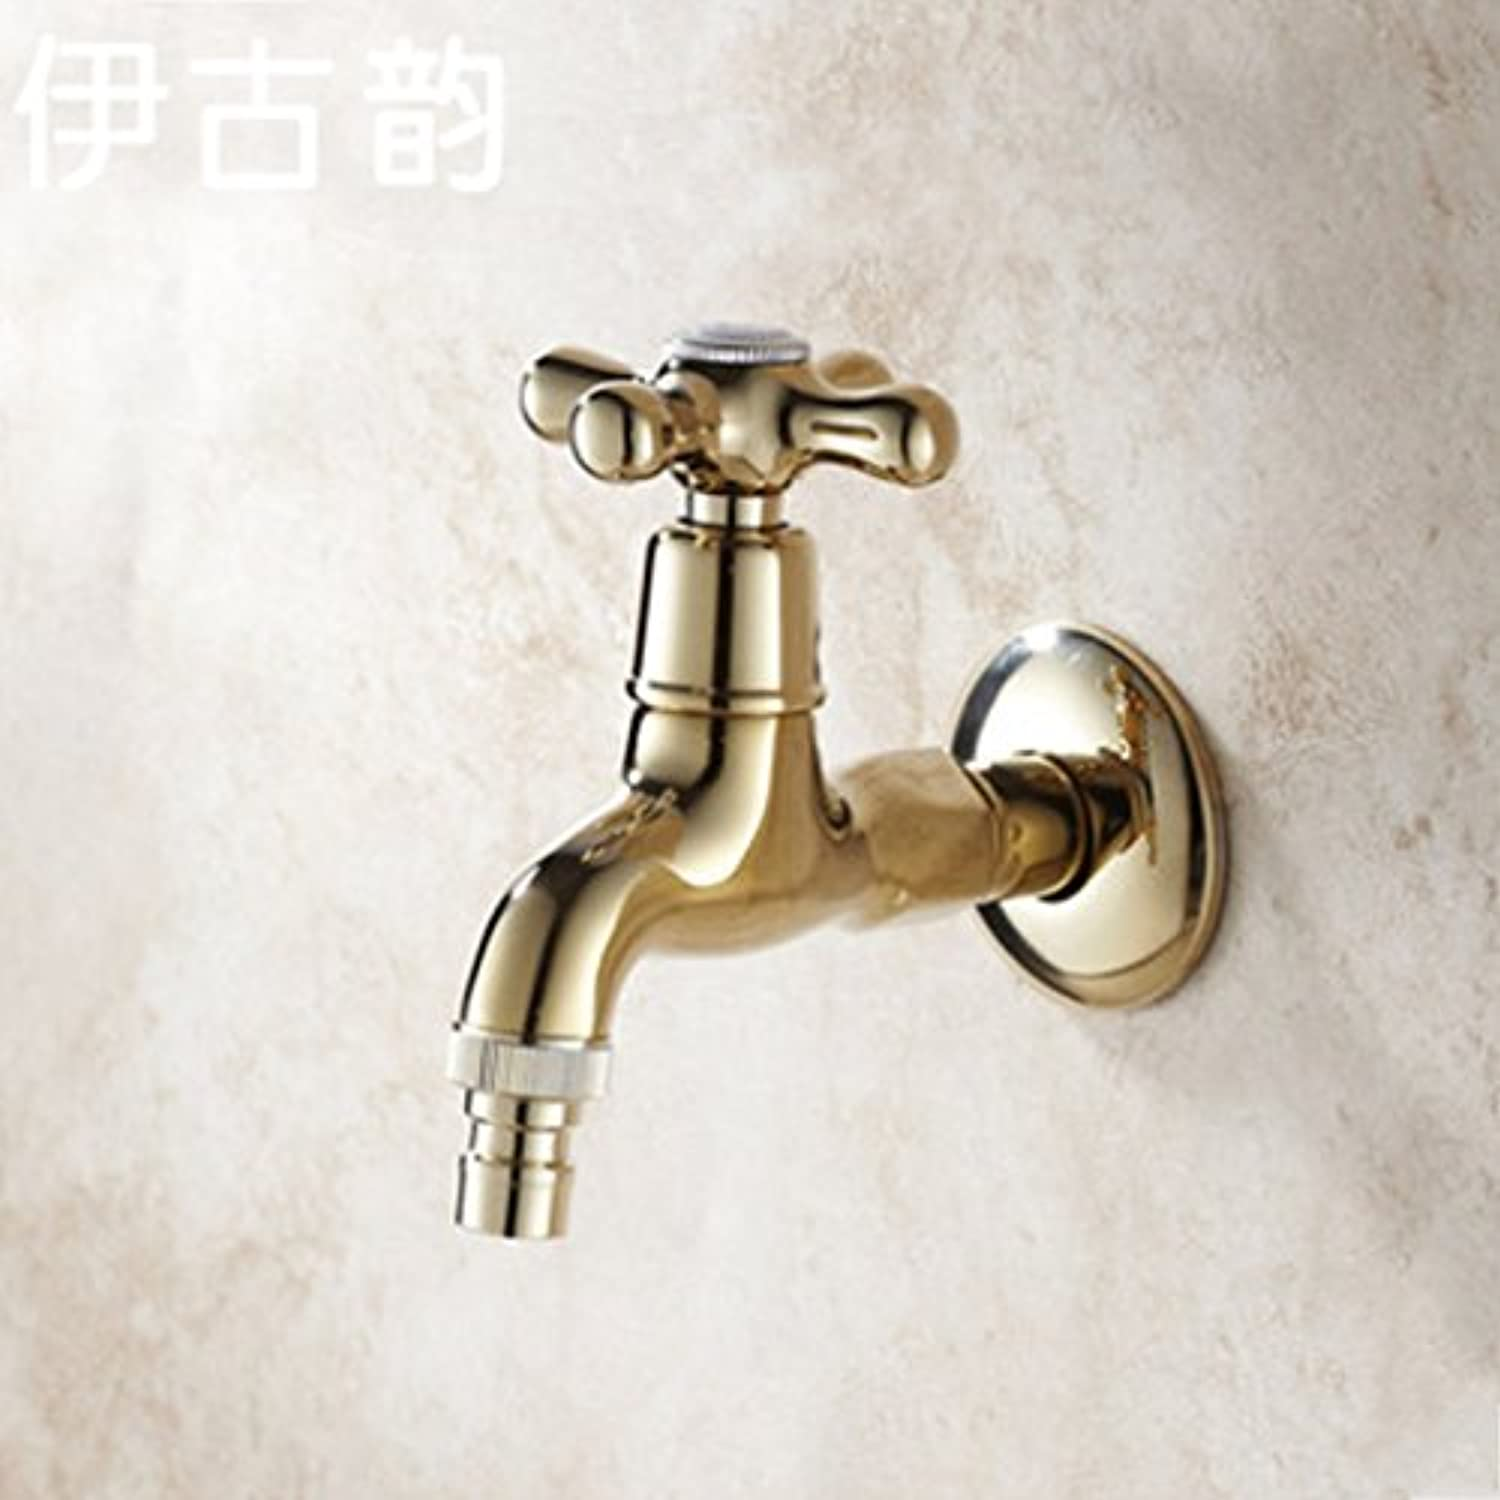 Hlluya Professional Sink Mixer Tap Kitchen Faucet The gold-copper washer mops pool taps, single-a water faucet